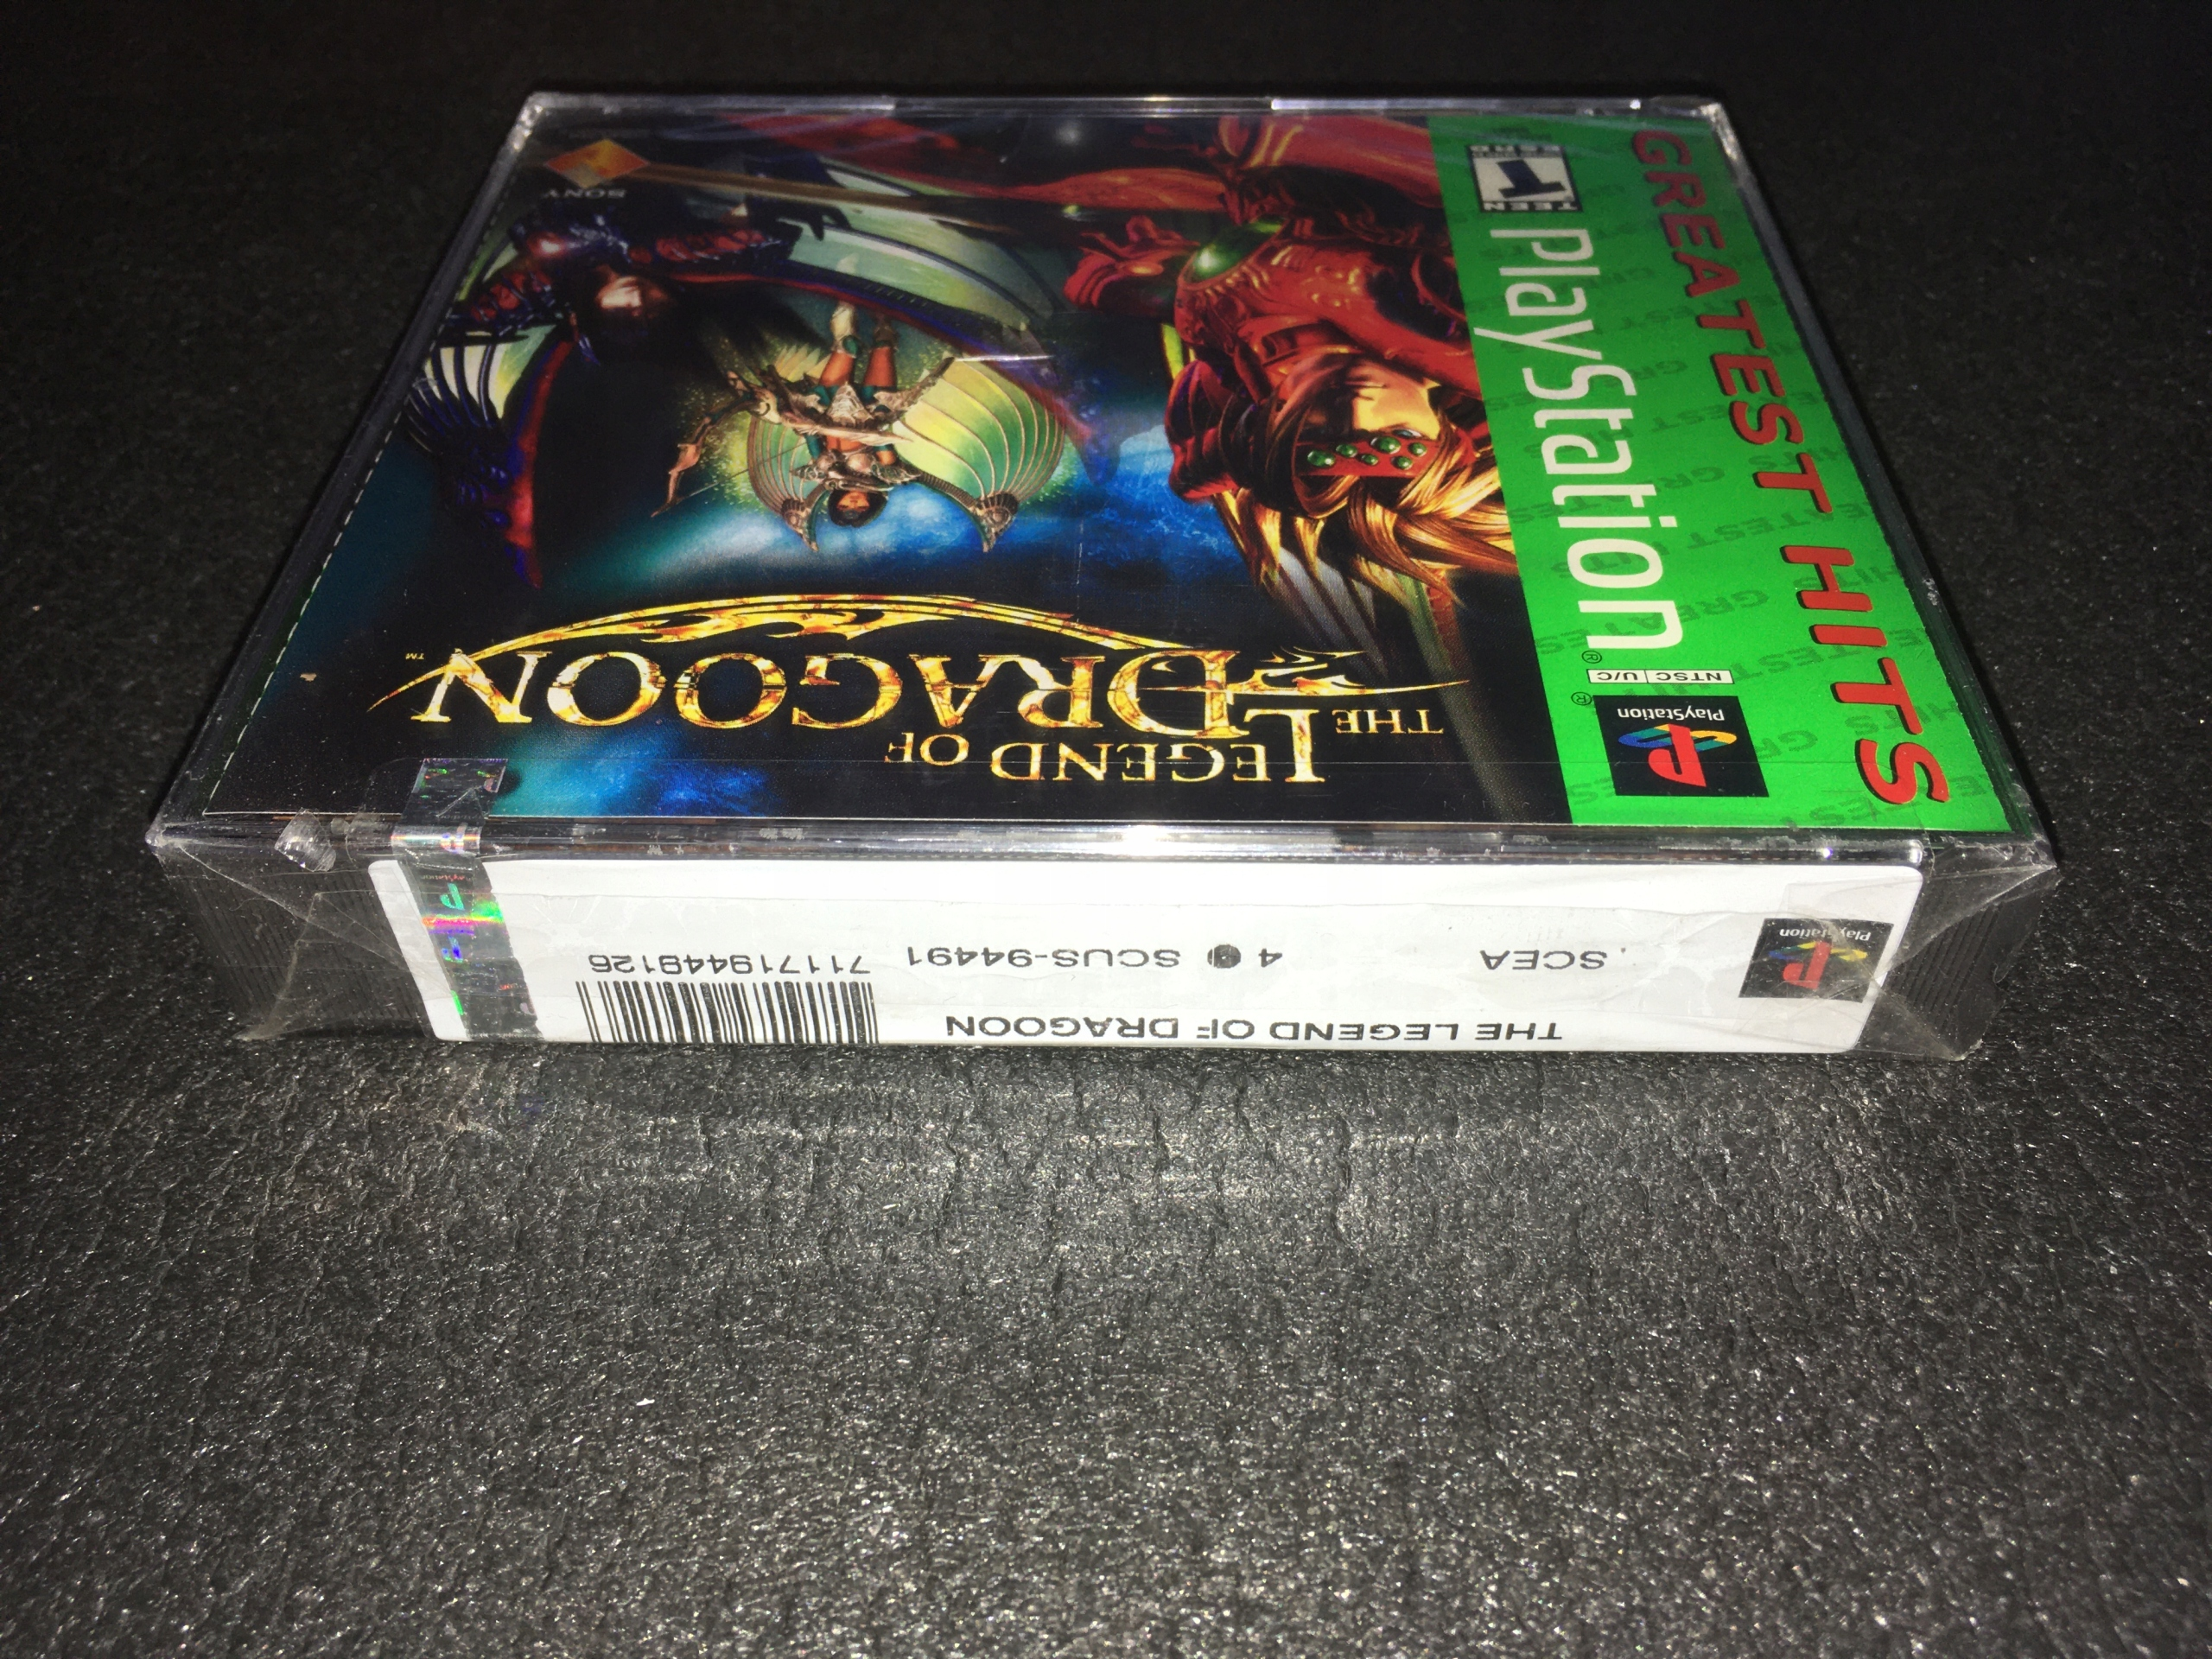 The Legend of Dragoon / Nowa / PS1 / NTSC-USA